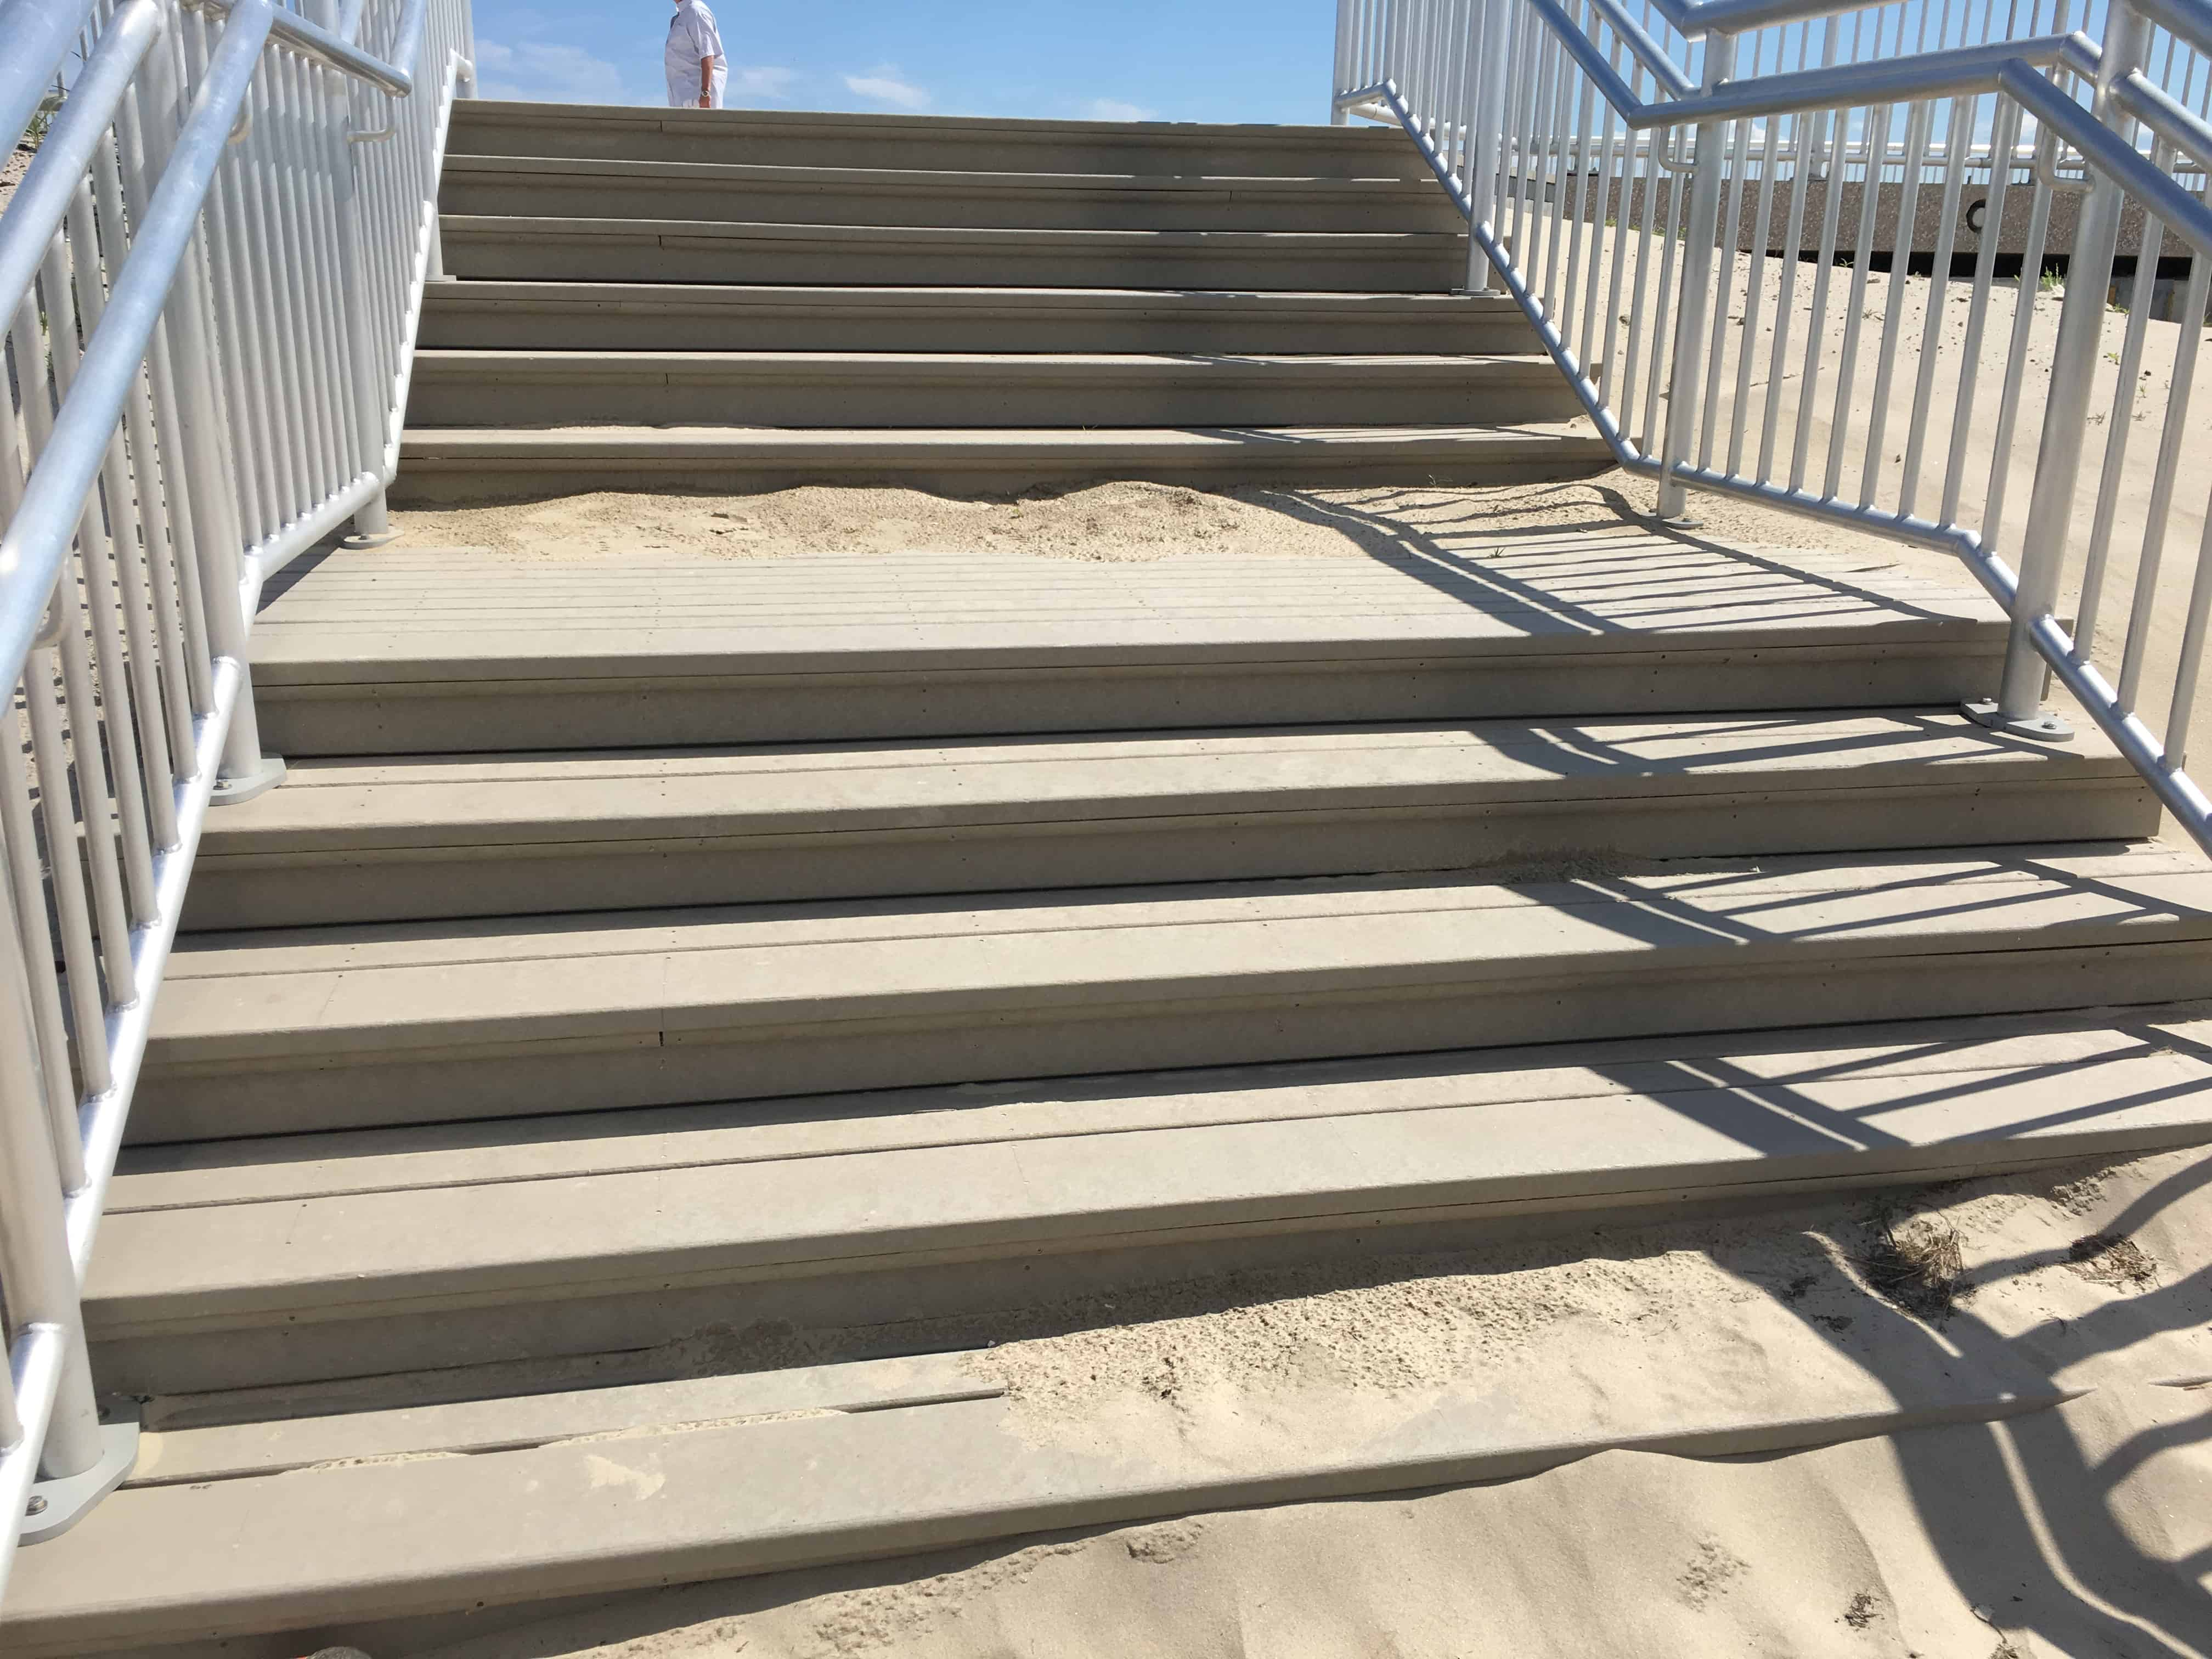 Why Not Stair Treads? – resurfaced with Recycled Plastic Lumber